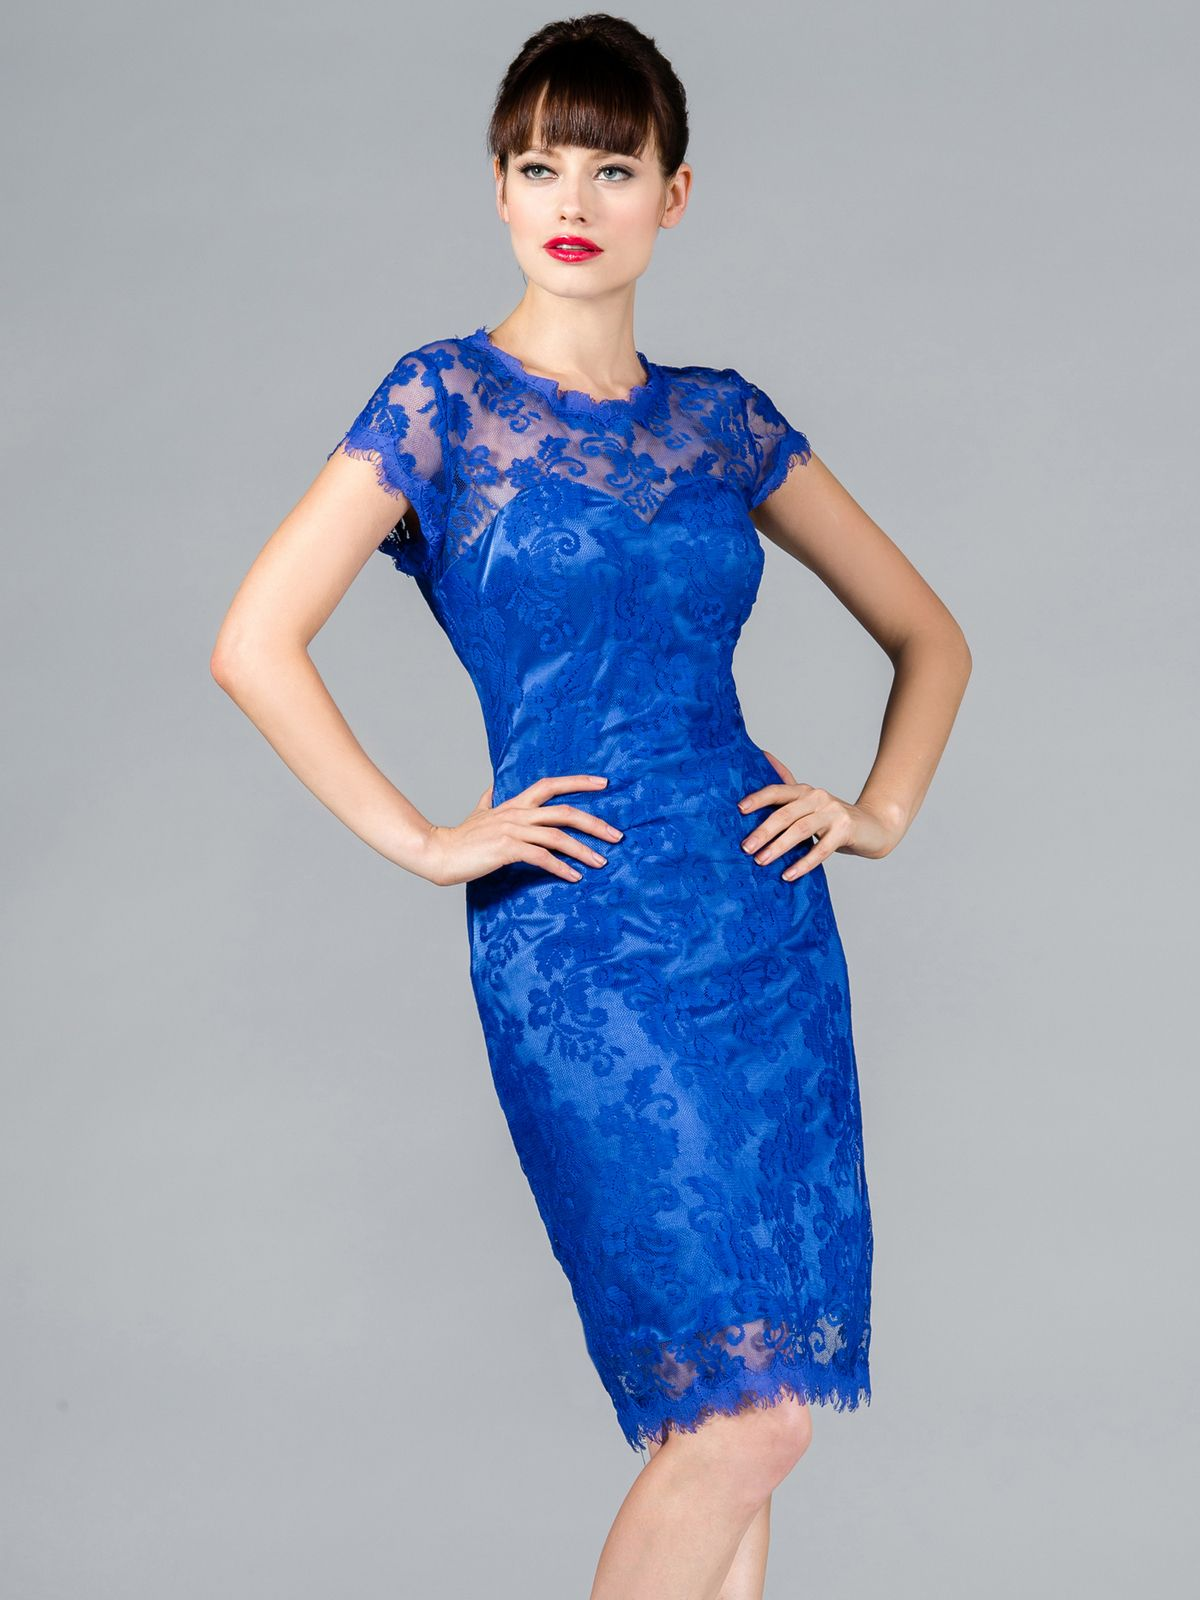 Stunning Lace Evening Dresses : Royal Blue Vintage Lace Cocktail ...